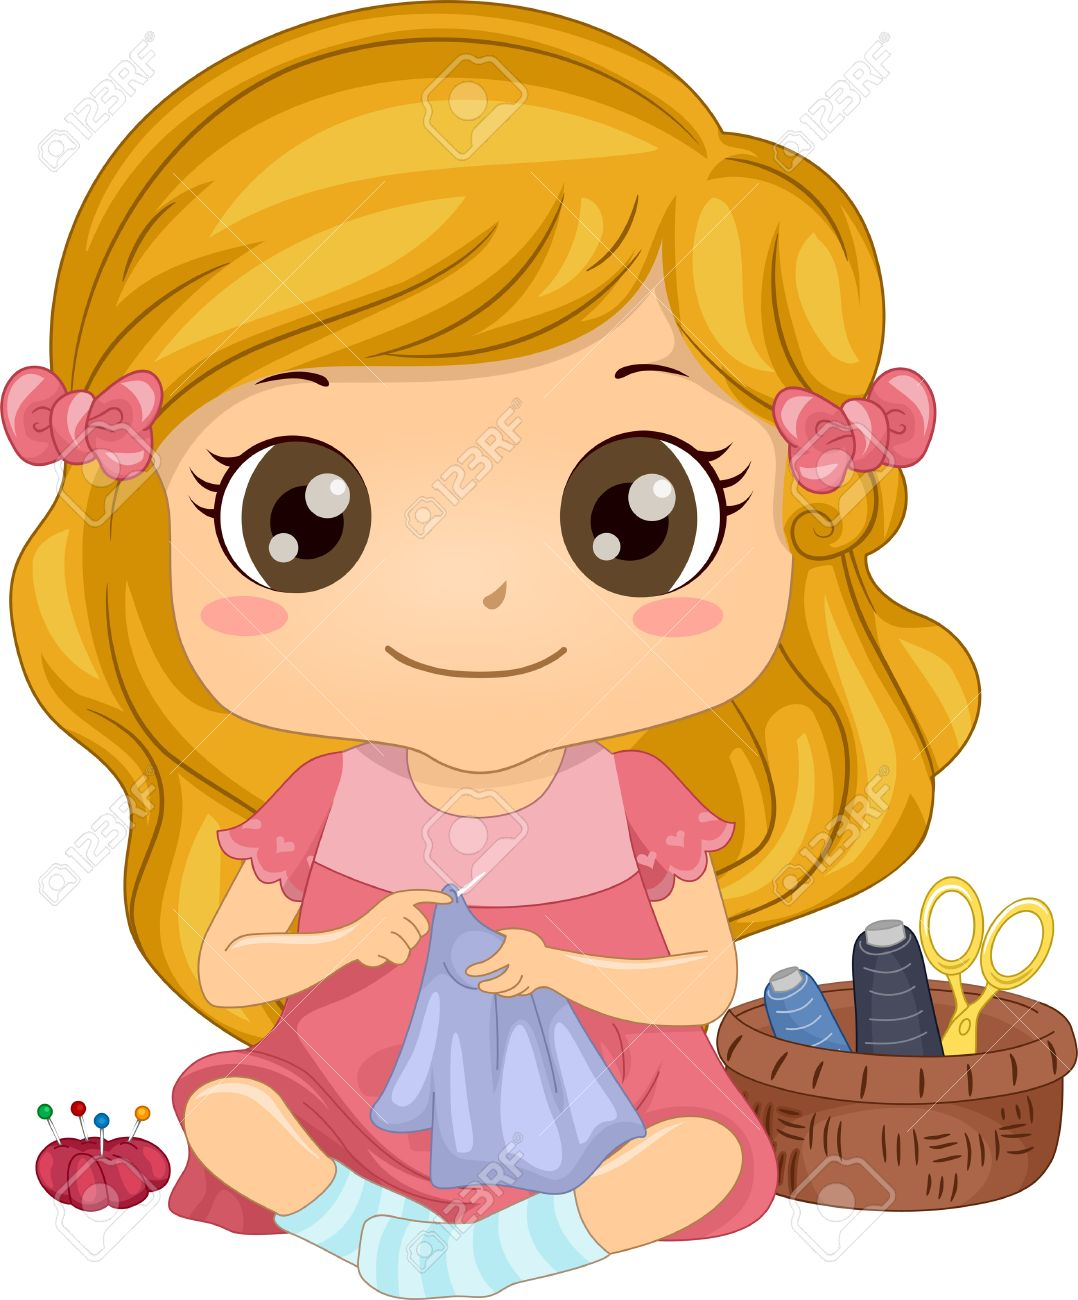 hight resolution of illustration of a cute little girl sewing a piece of fabric stock vector 29570966